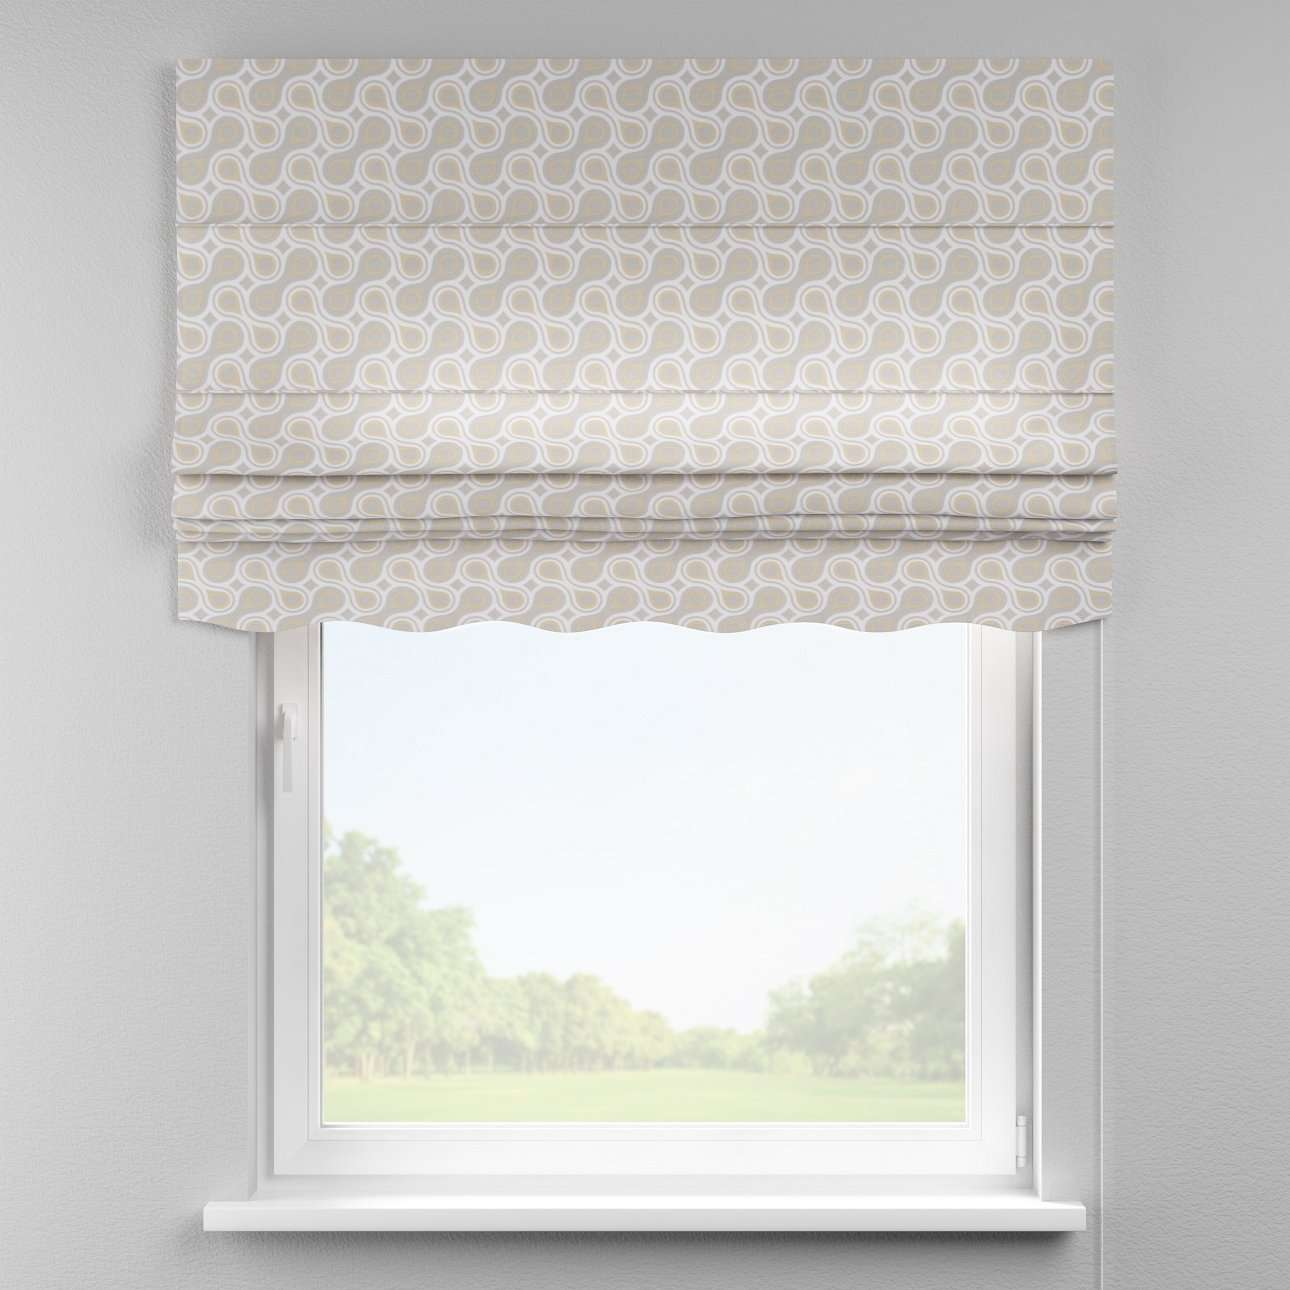 Florence roman blind  80 x 170 cm (31.5 x 67 inch) in collection Flowers, fabric: 311-11